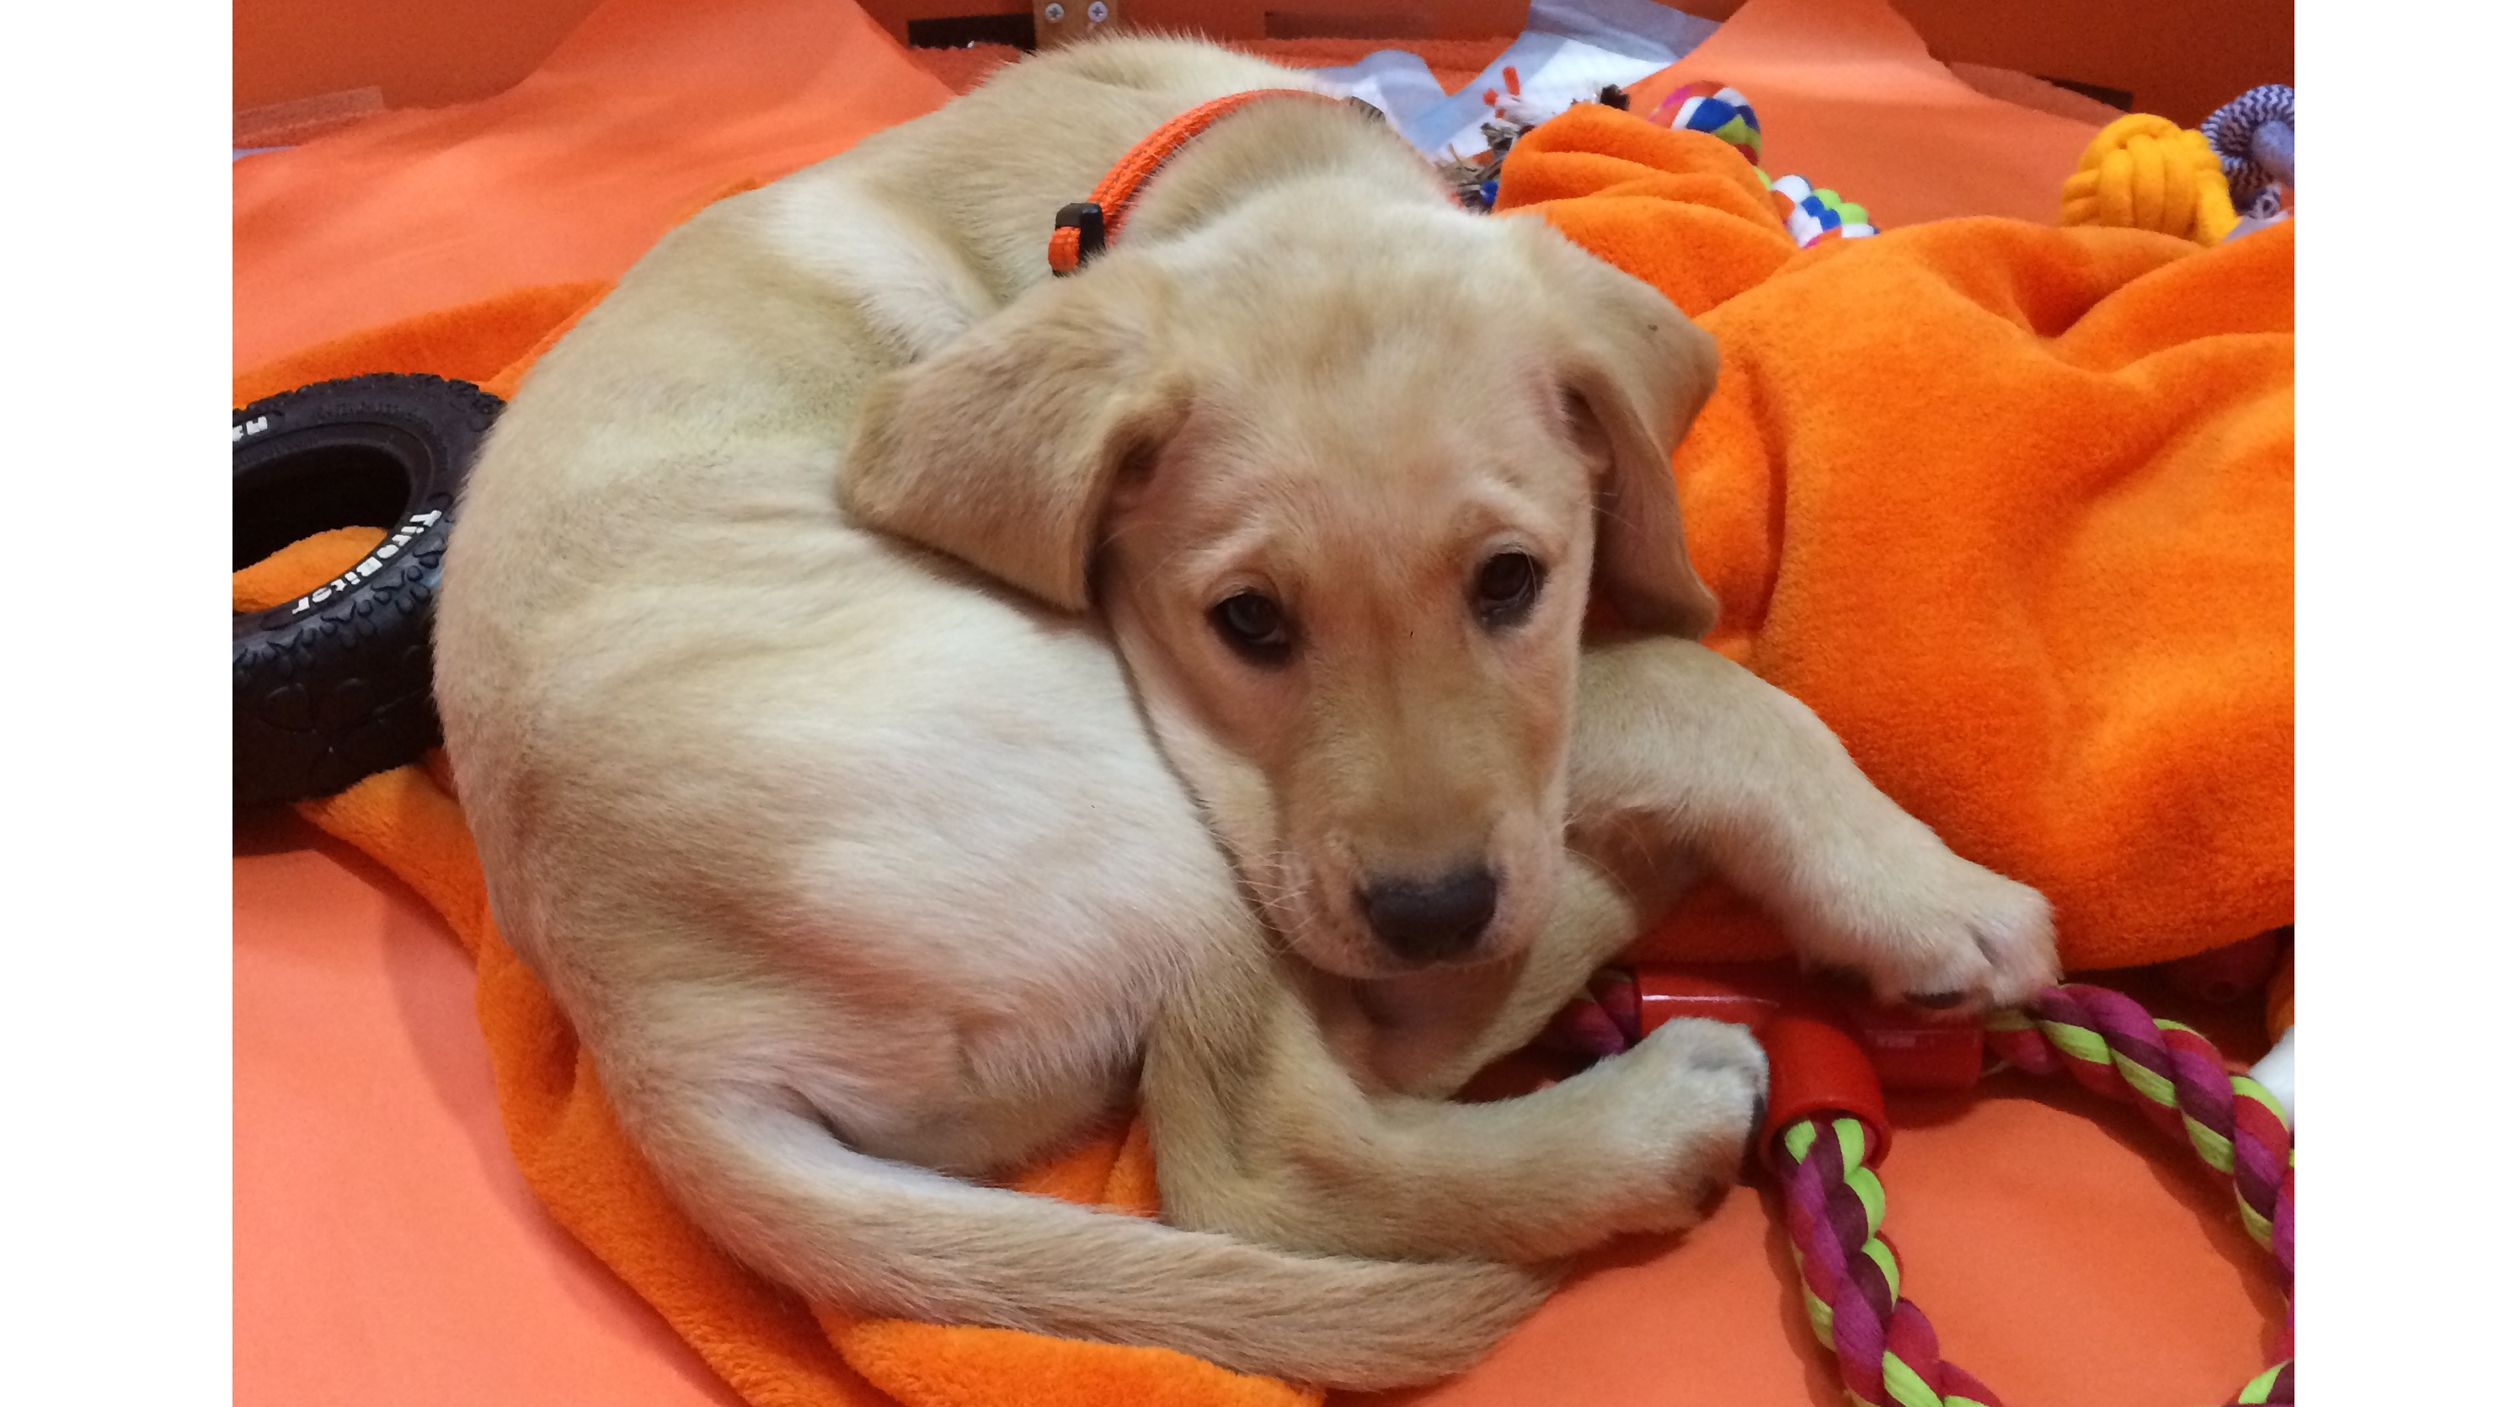 Wrangler's big (and adorable) morning Puppy cam, Puppy